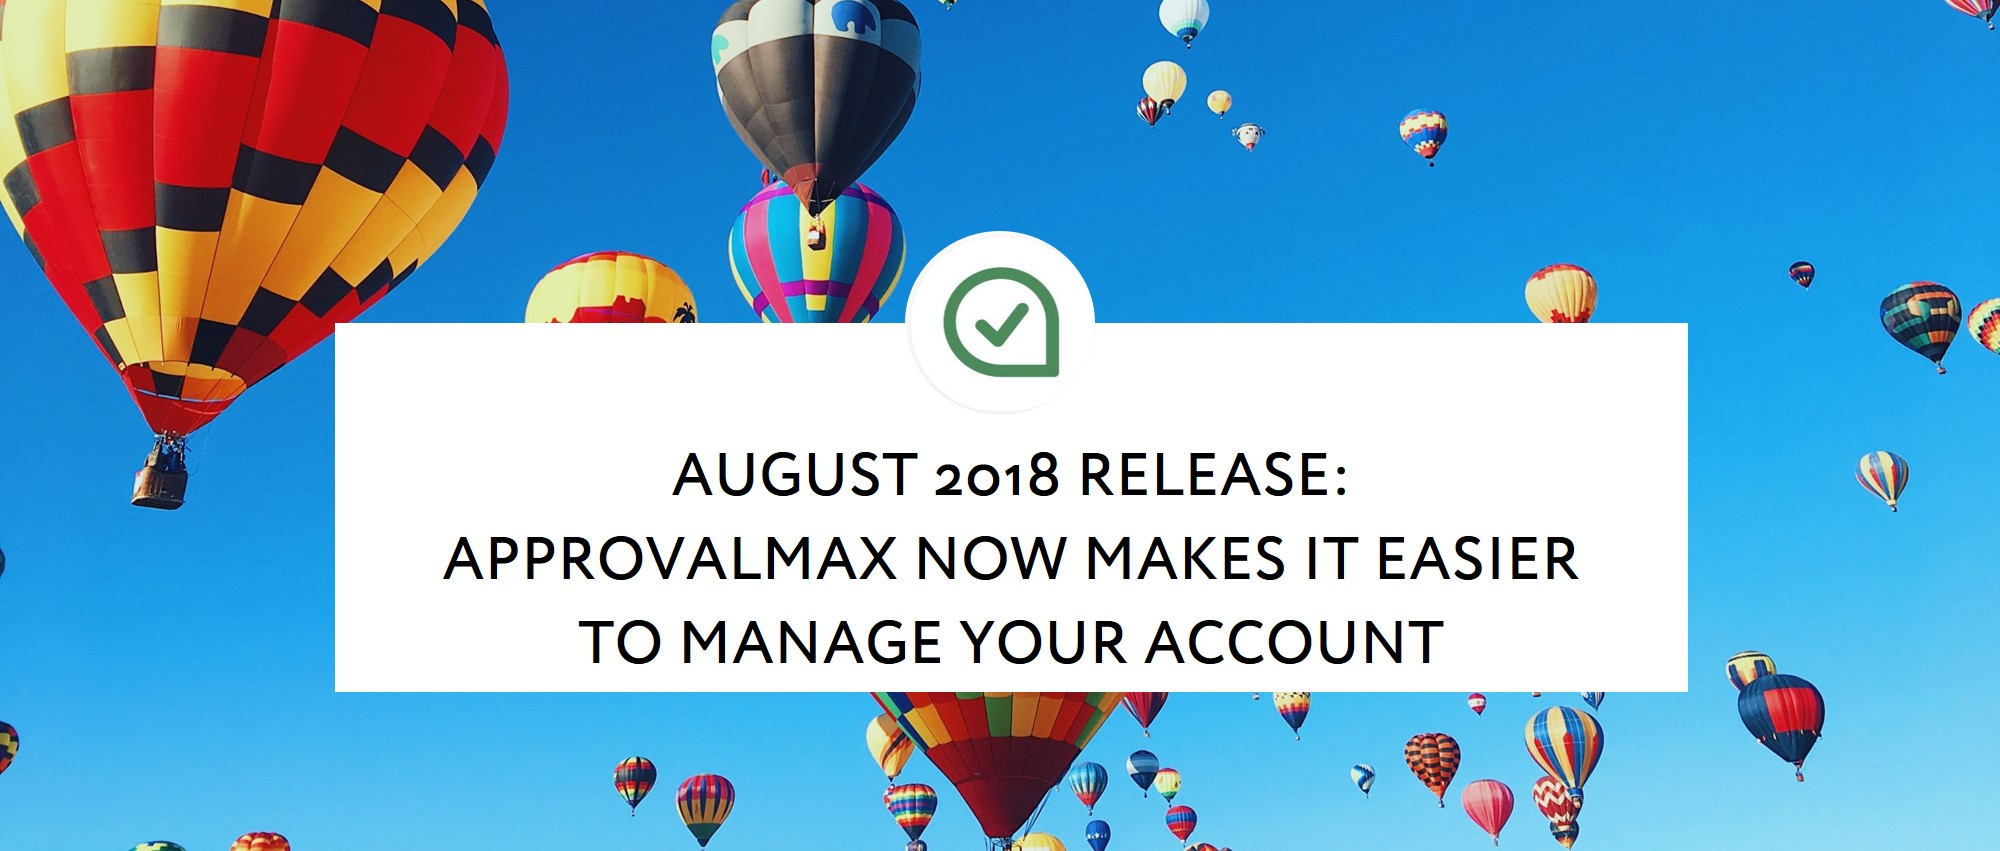 August 2018 Release